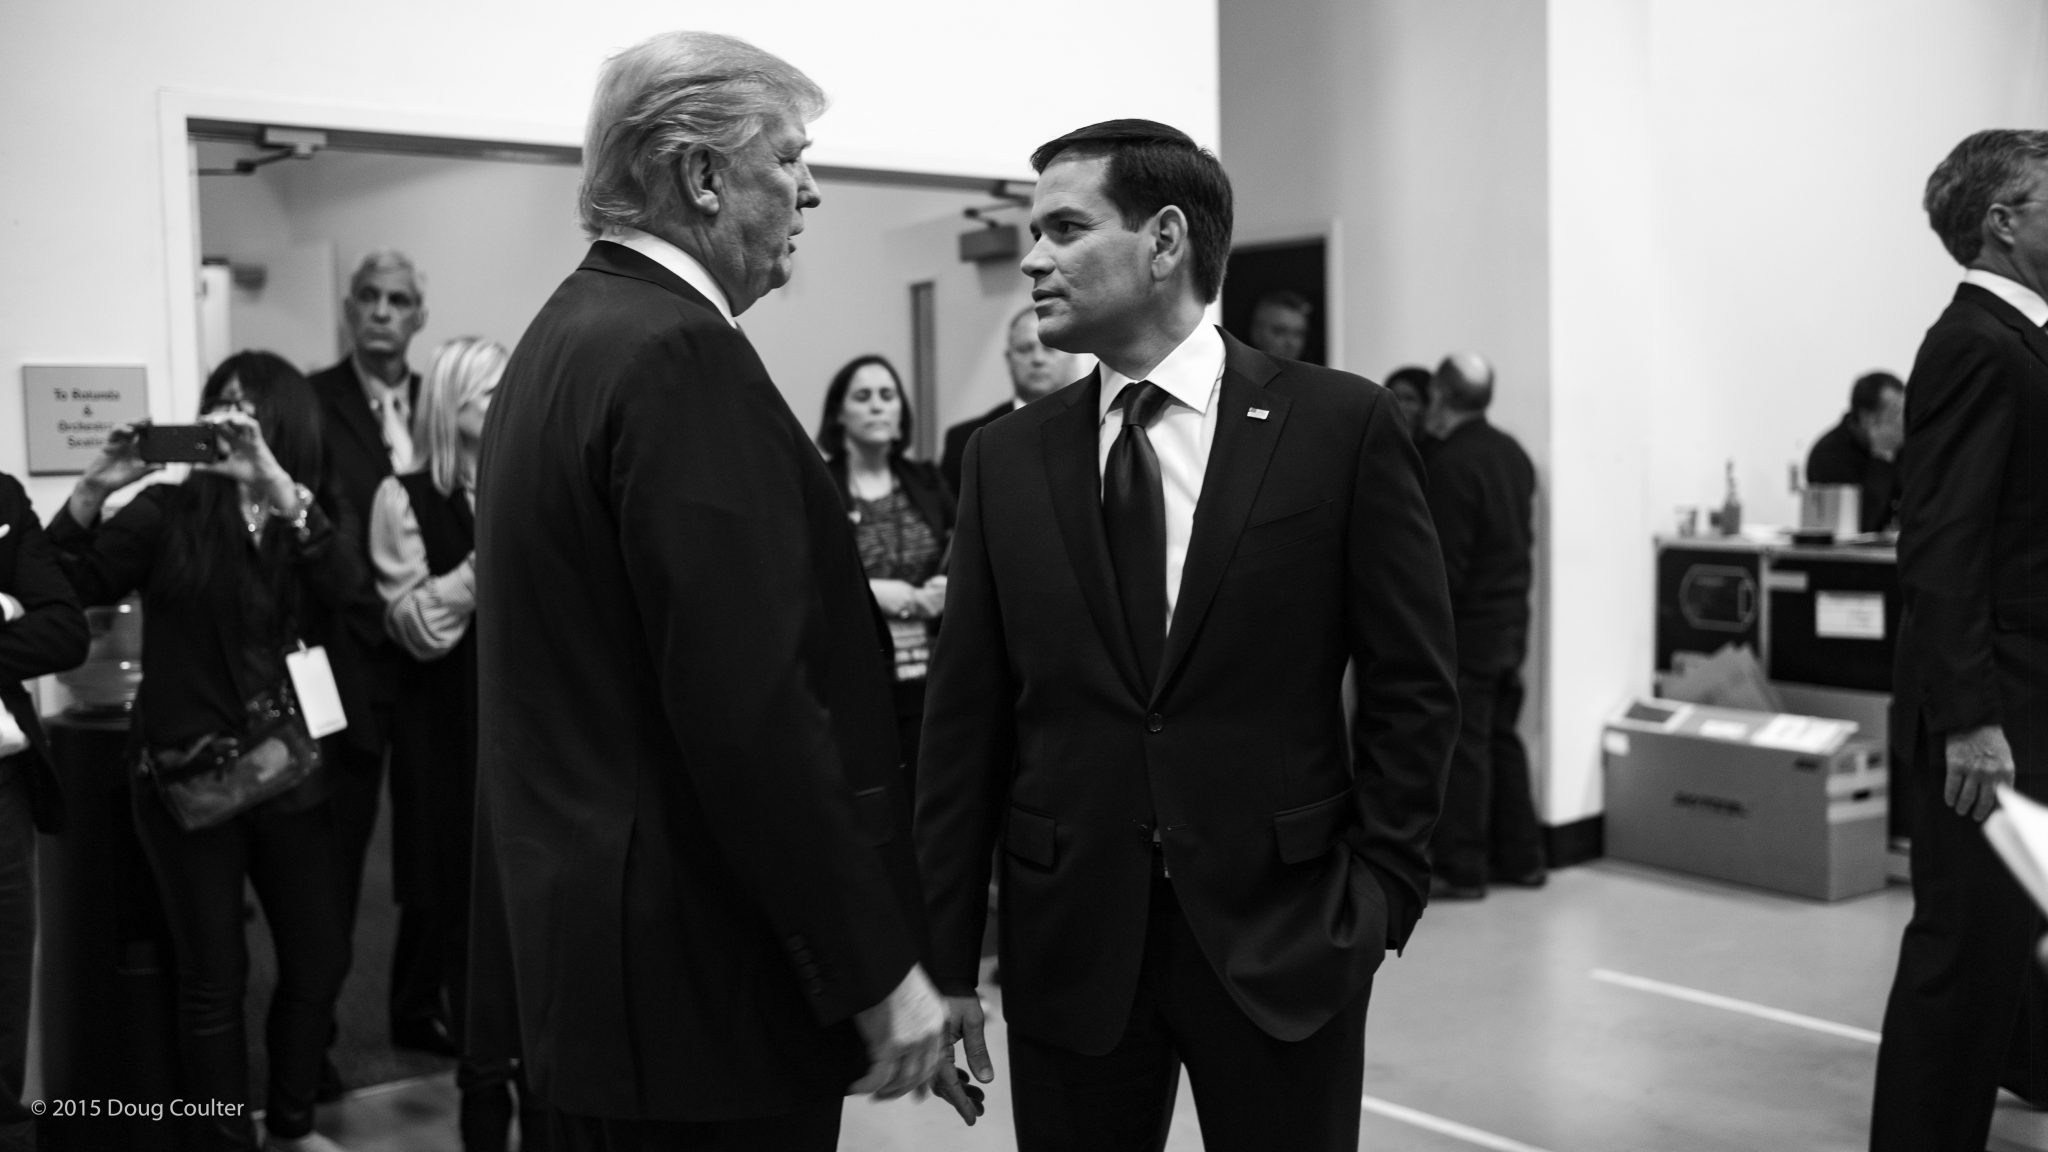 Photo: Marco Rubio and Donald Trump; Source: www.gop.com